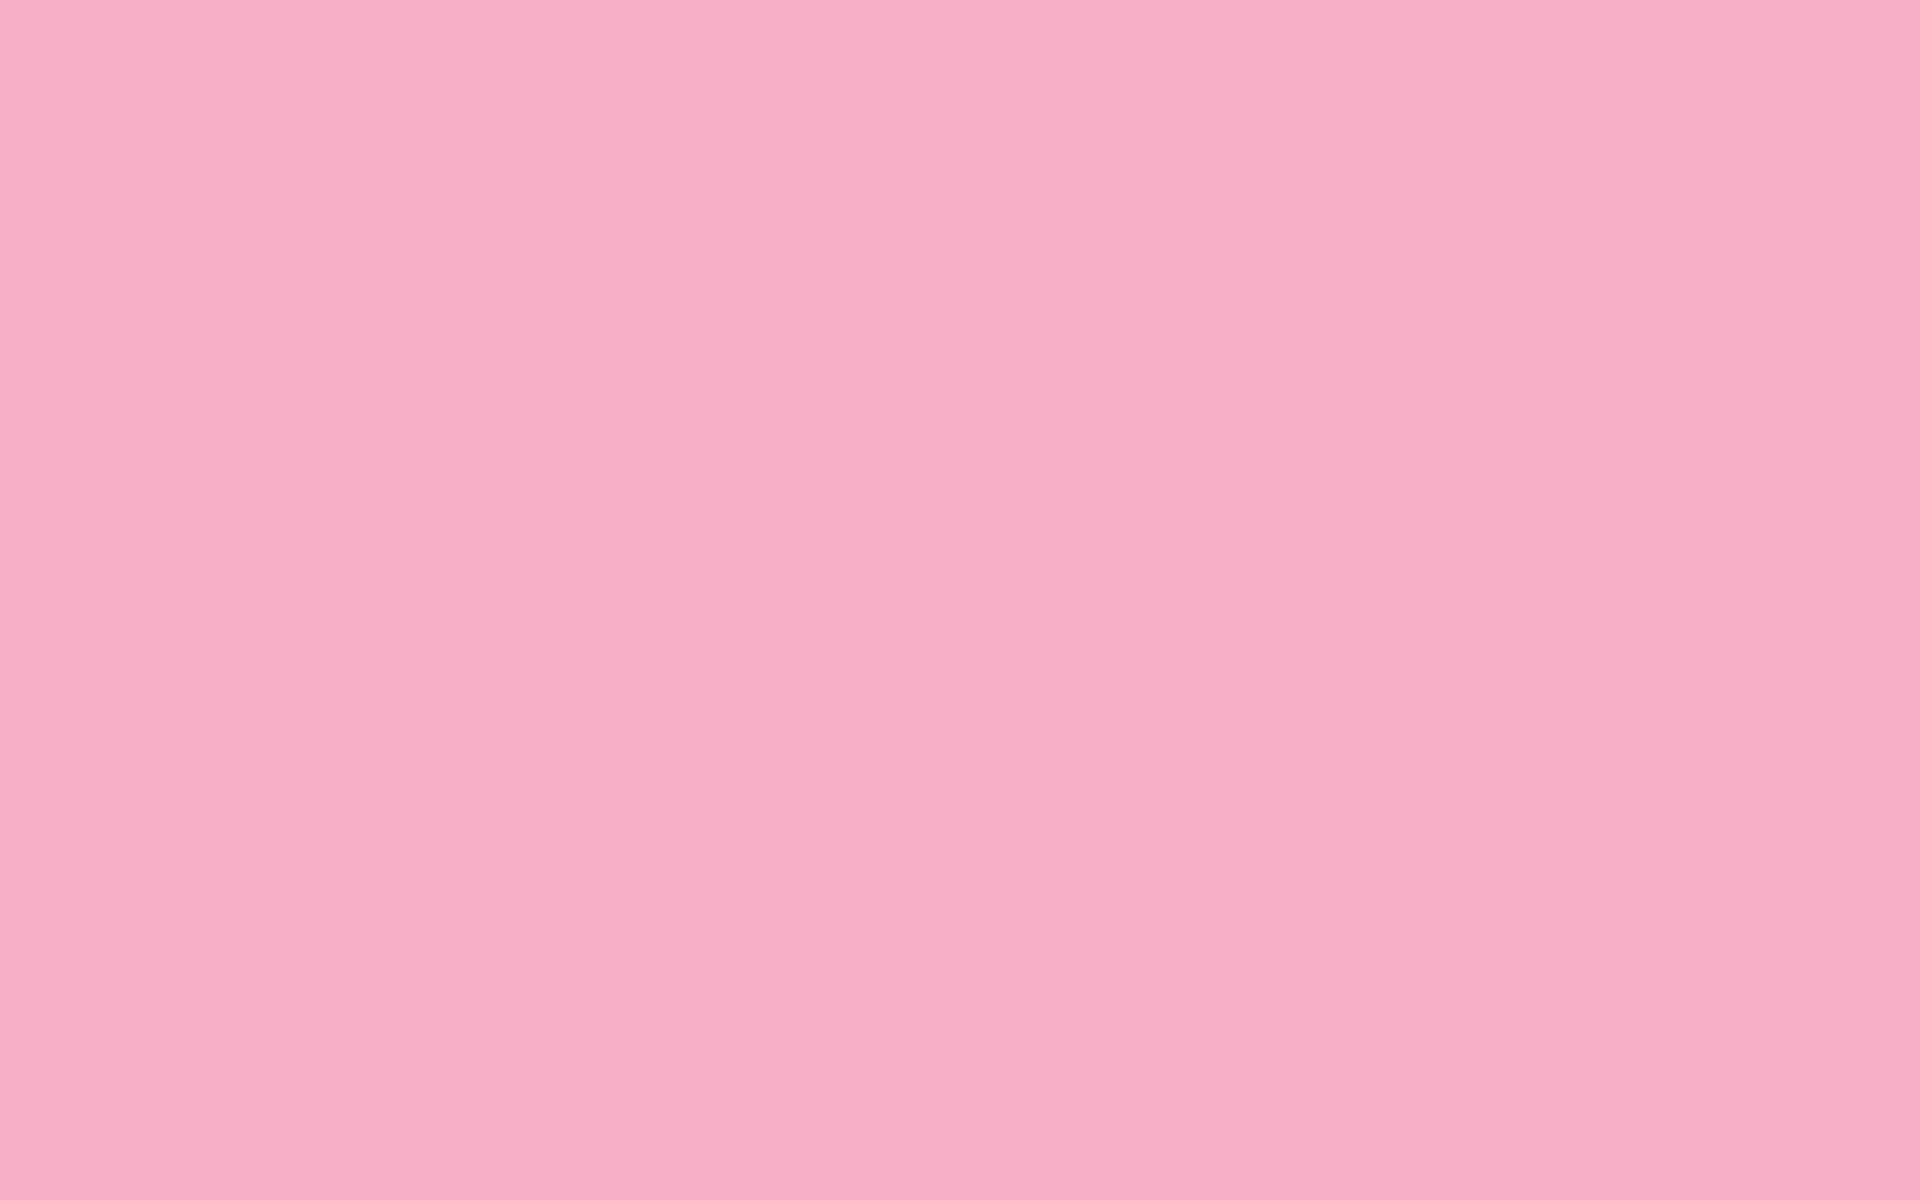 1920x1200 Nadeshiko Pink Solid Color Background